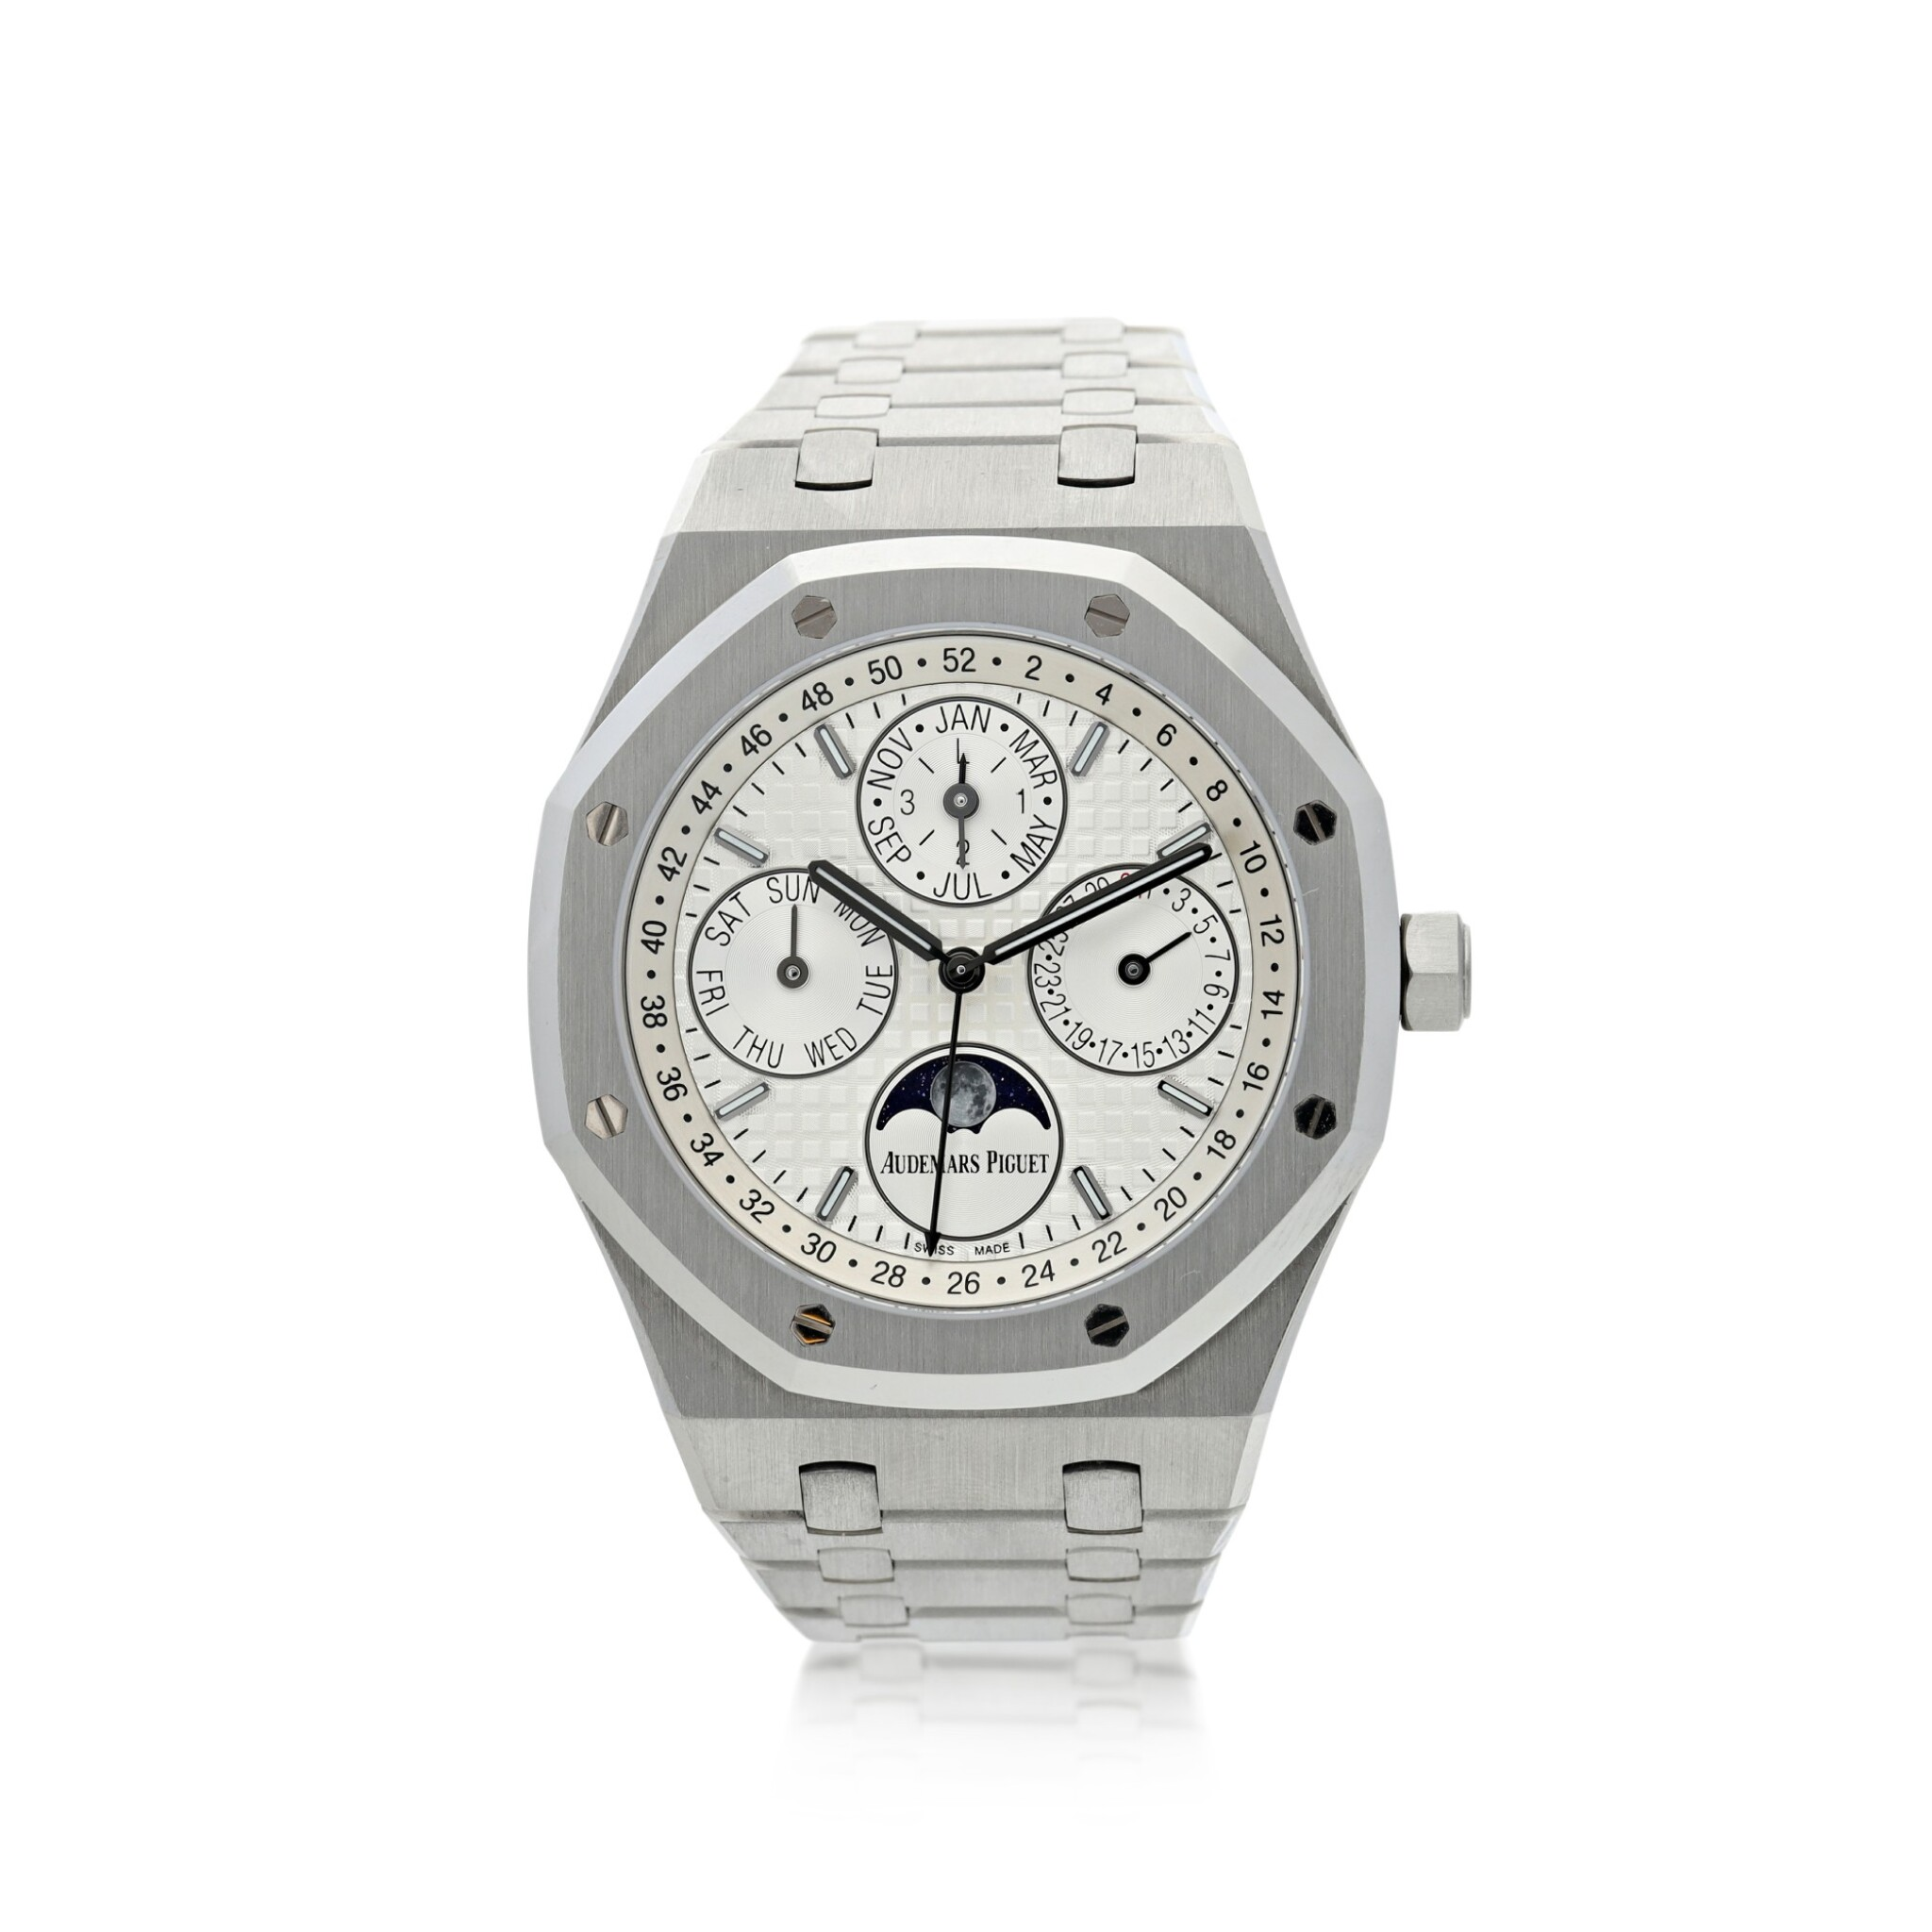 View full screen - View 1 of Lot 9. AUDEMARS PIGUET | REFERENCE 26574ST.00.1220ST.01 ROYAL OAK   A STAINLESS STEEL AUTOMATIC PERPETUAL CALENDAR WRISTWATCH WITH MOON PHASES AND BRACELET, CIRCA 2018.